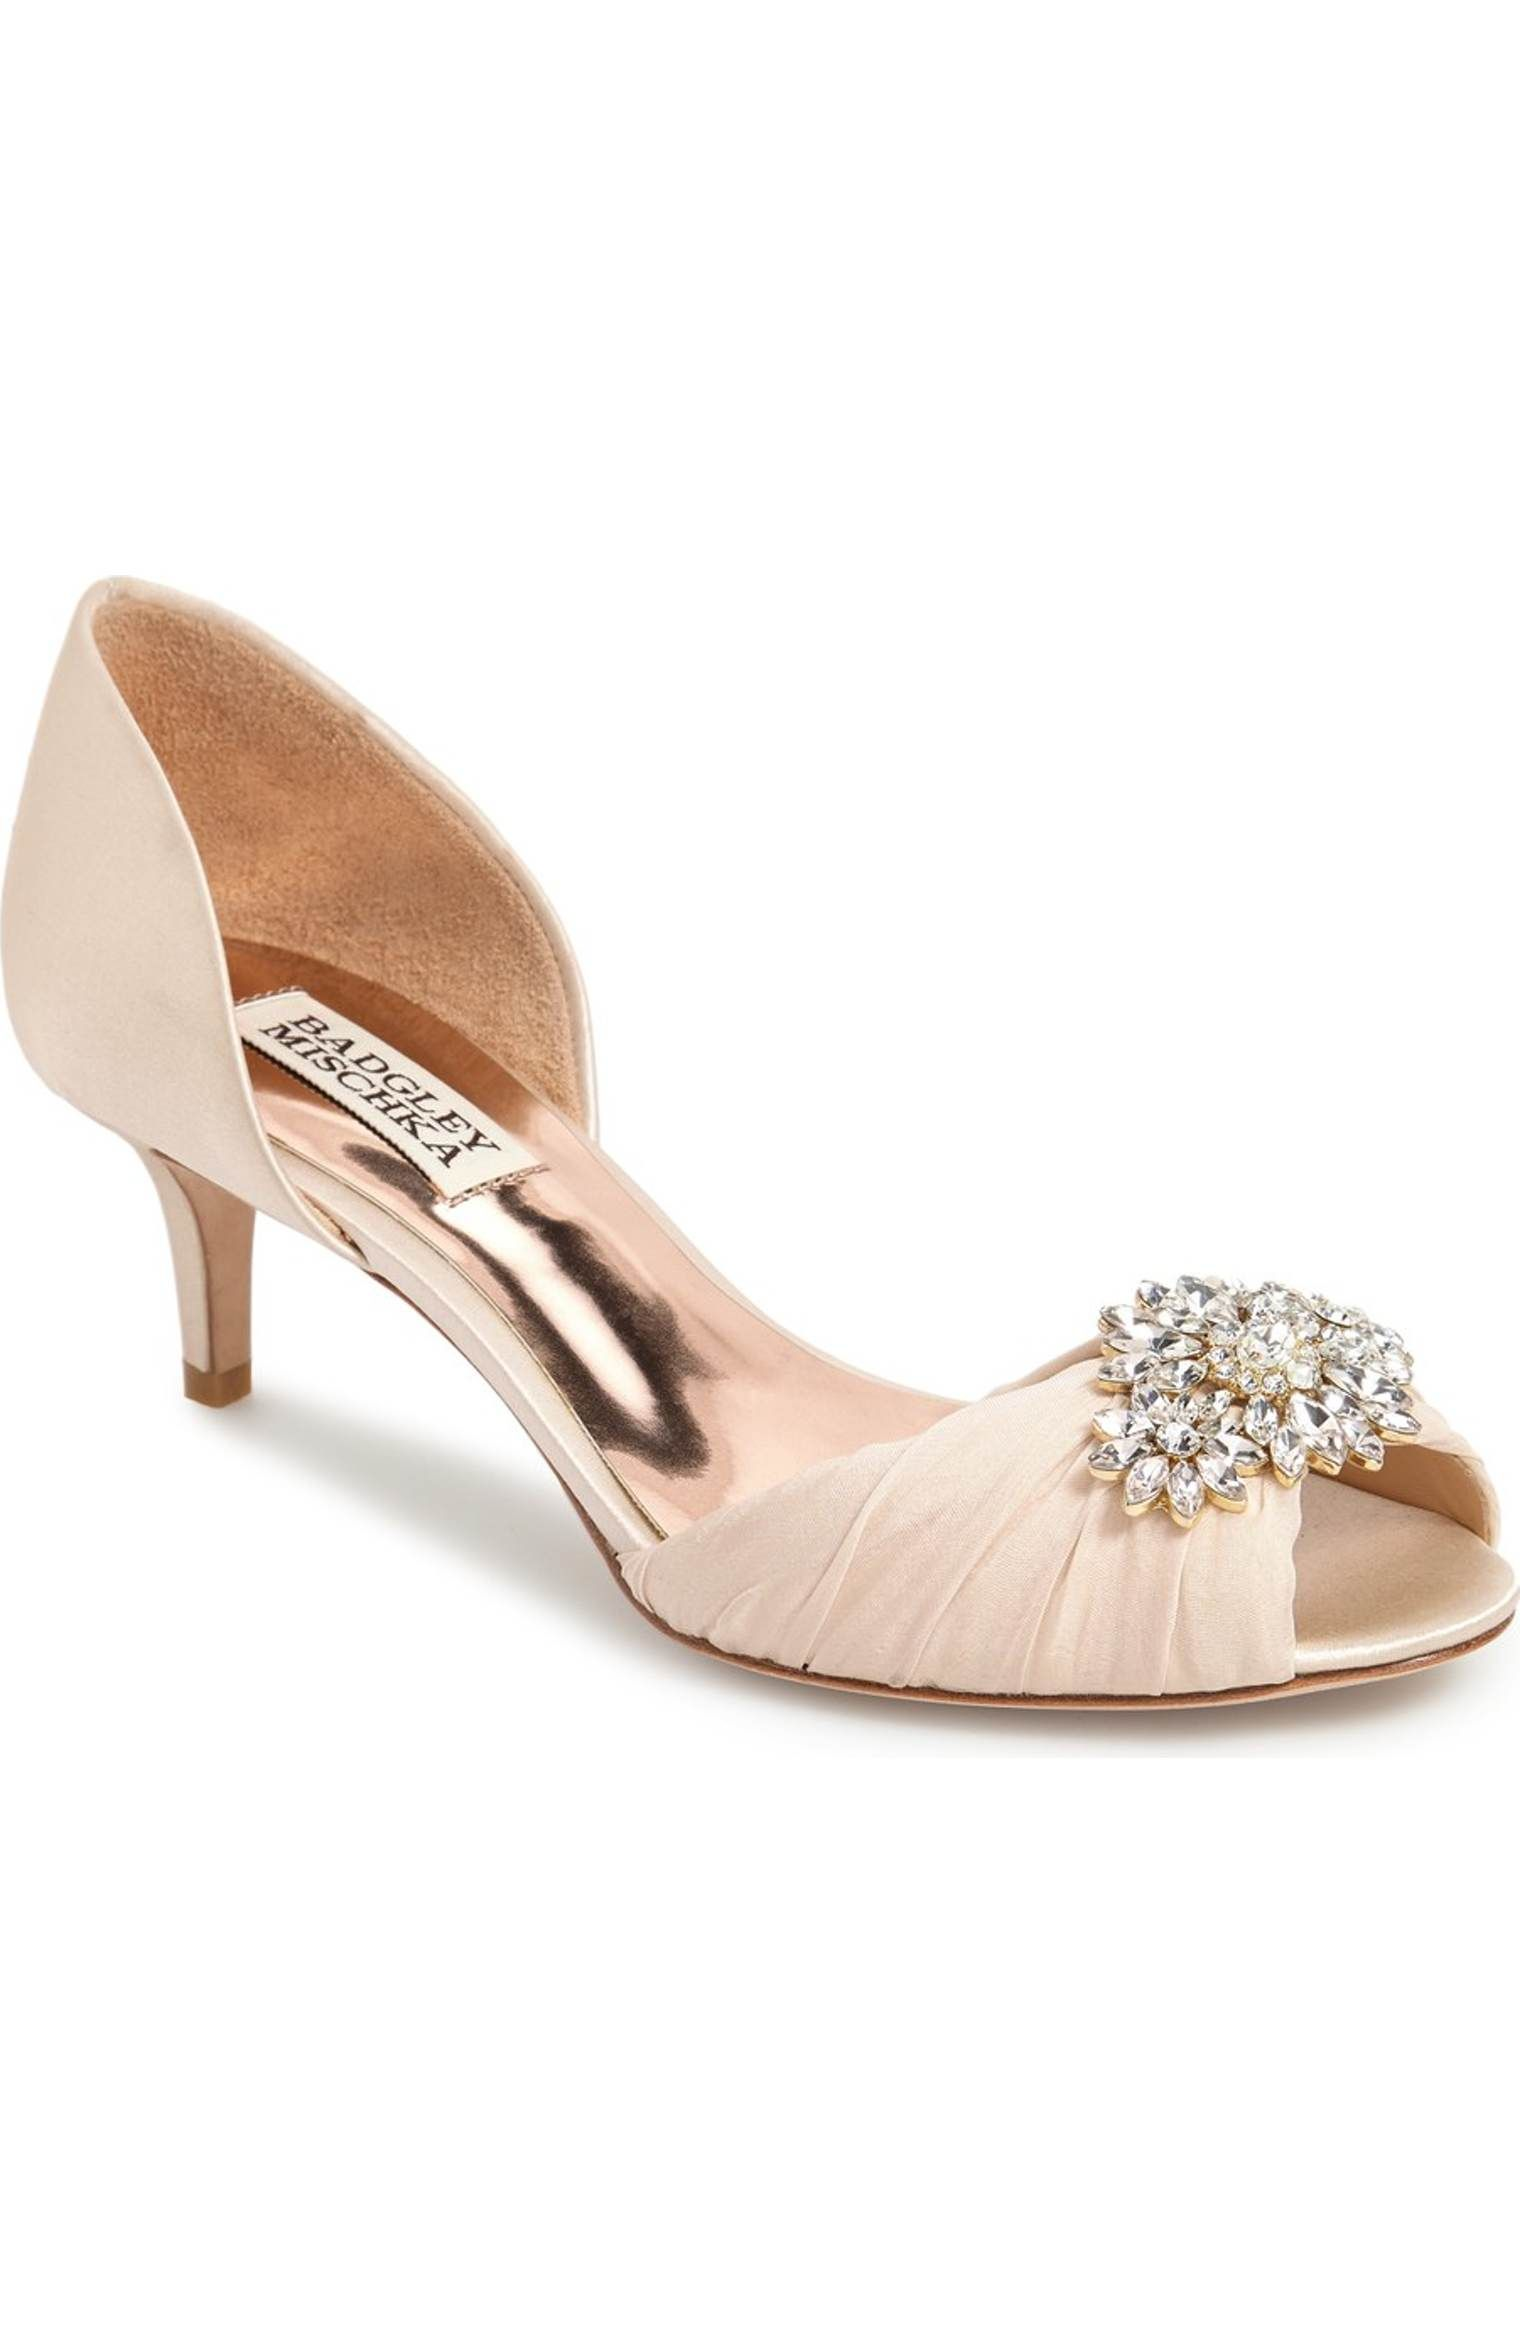 503031048d46fc Main Image - Badgley Mischka  Caitlin  Pump (Women)